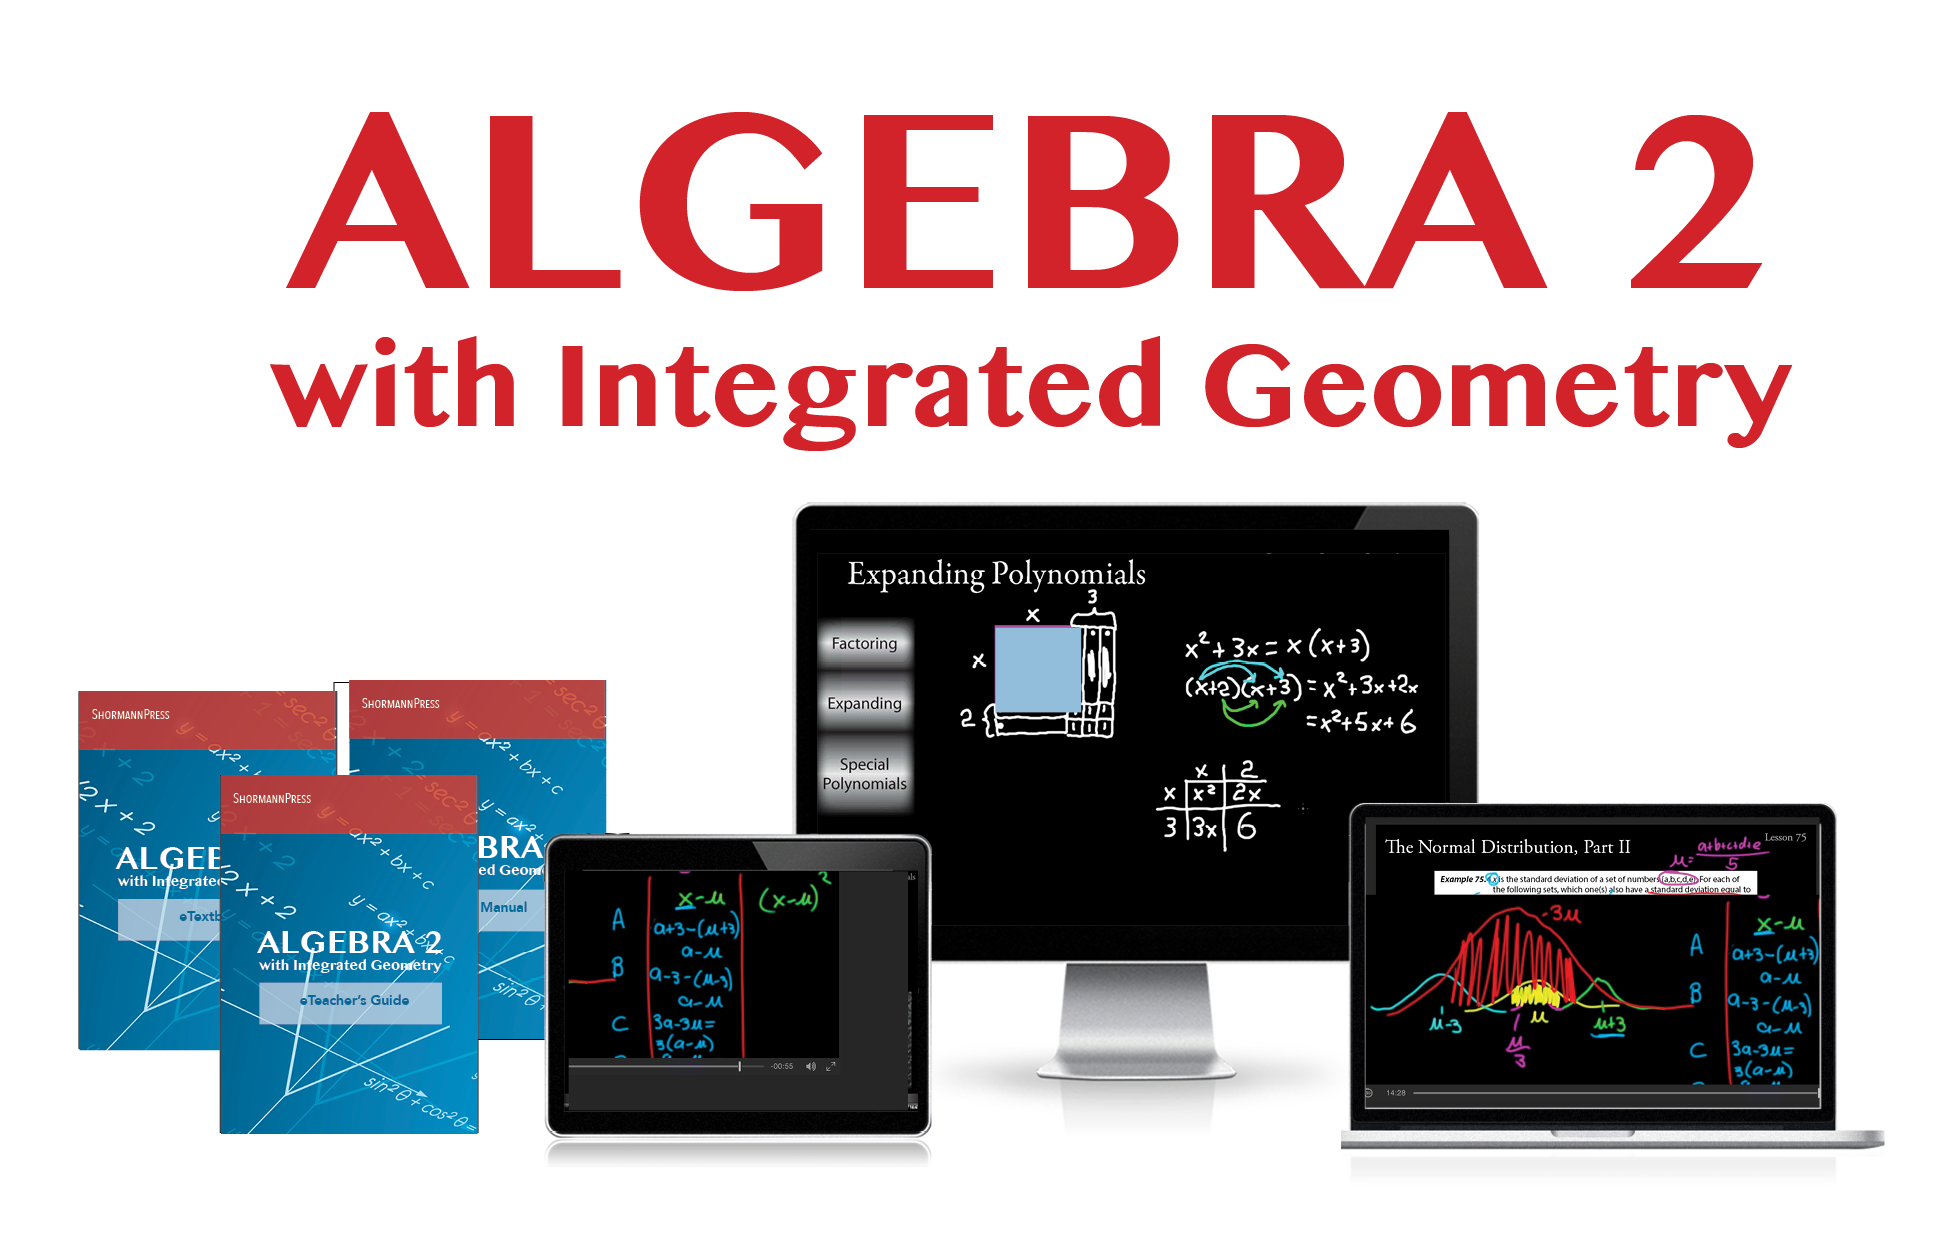 shormann-algebra-2-product-images-for-website-category-page2.png